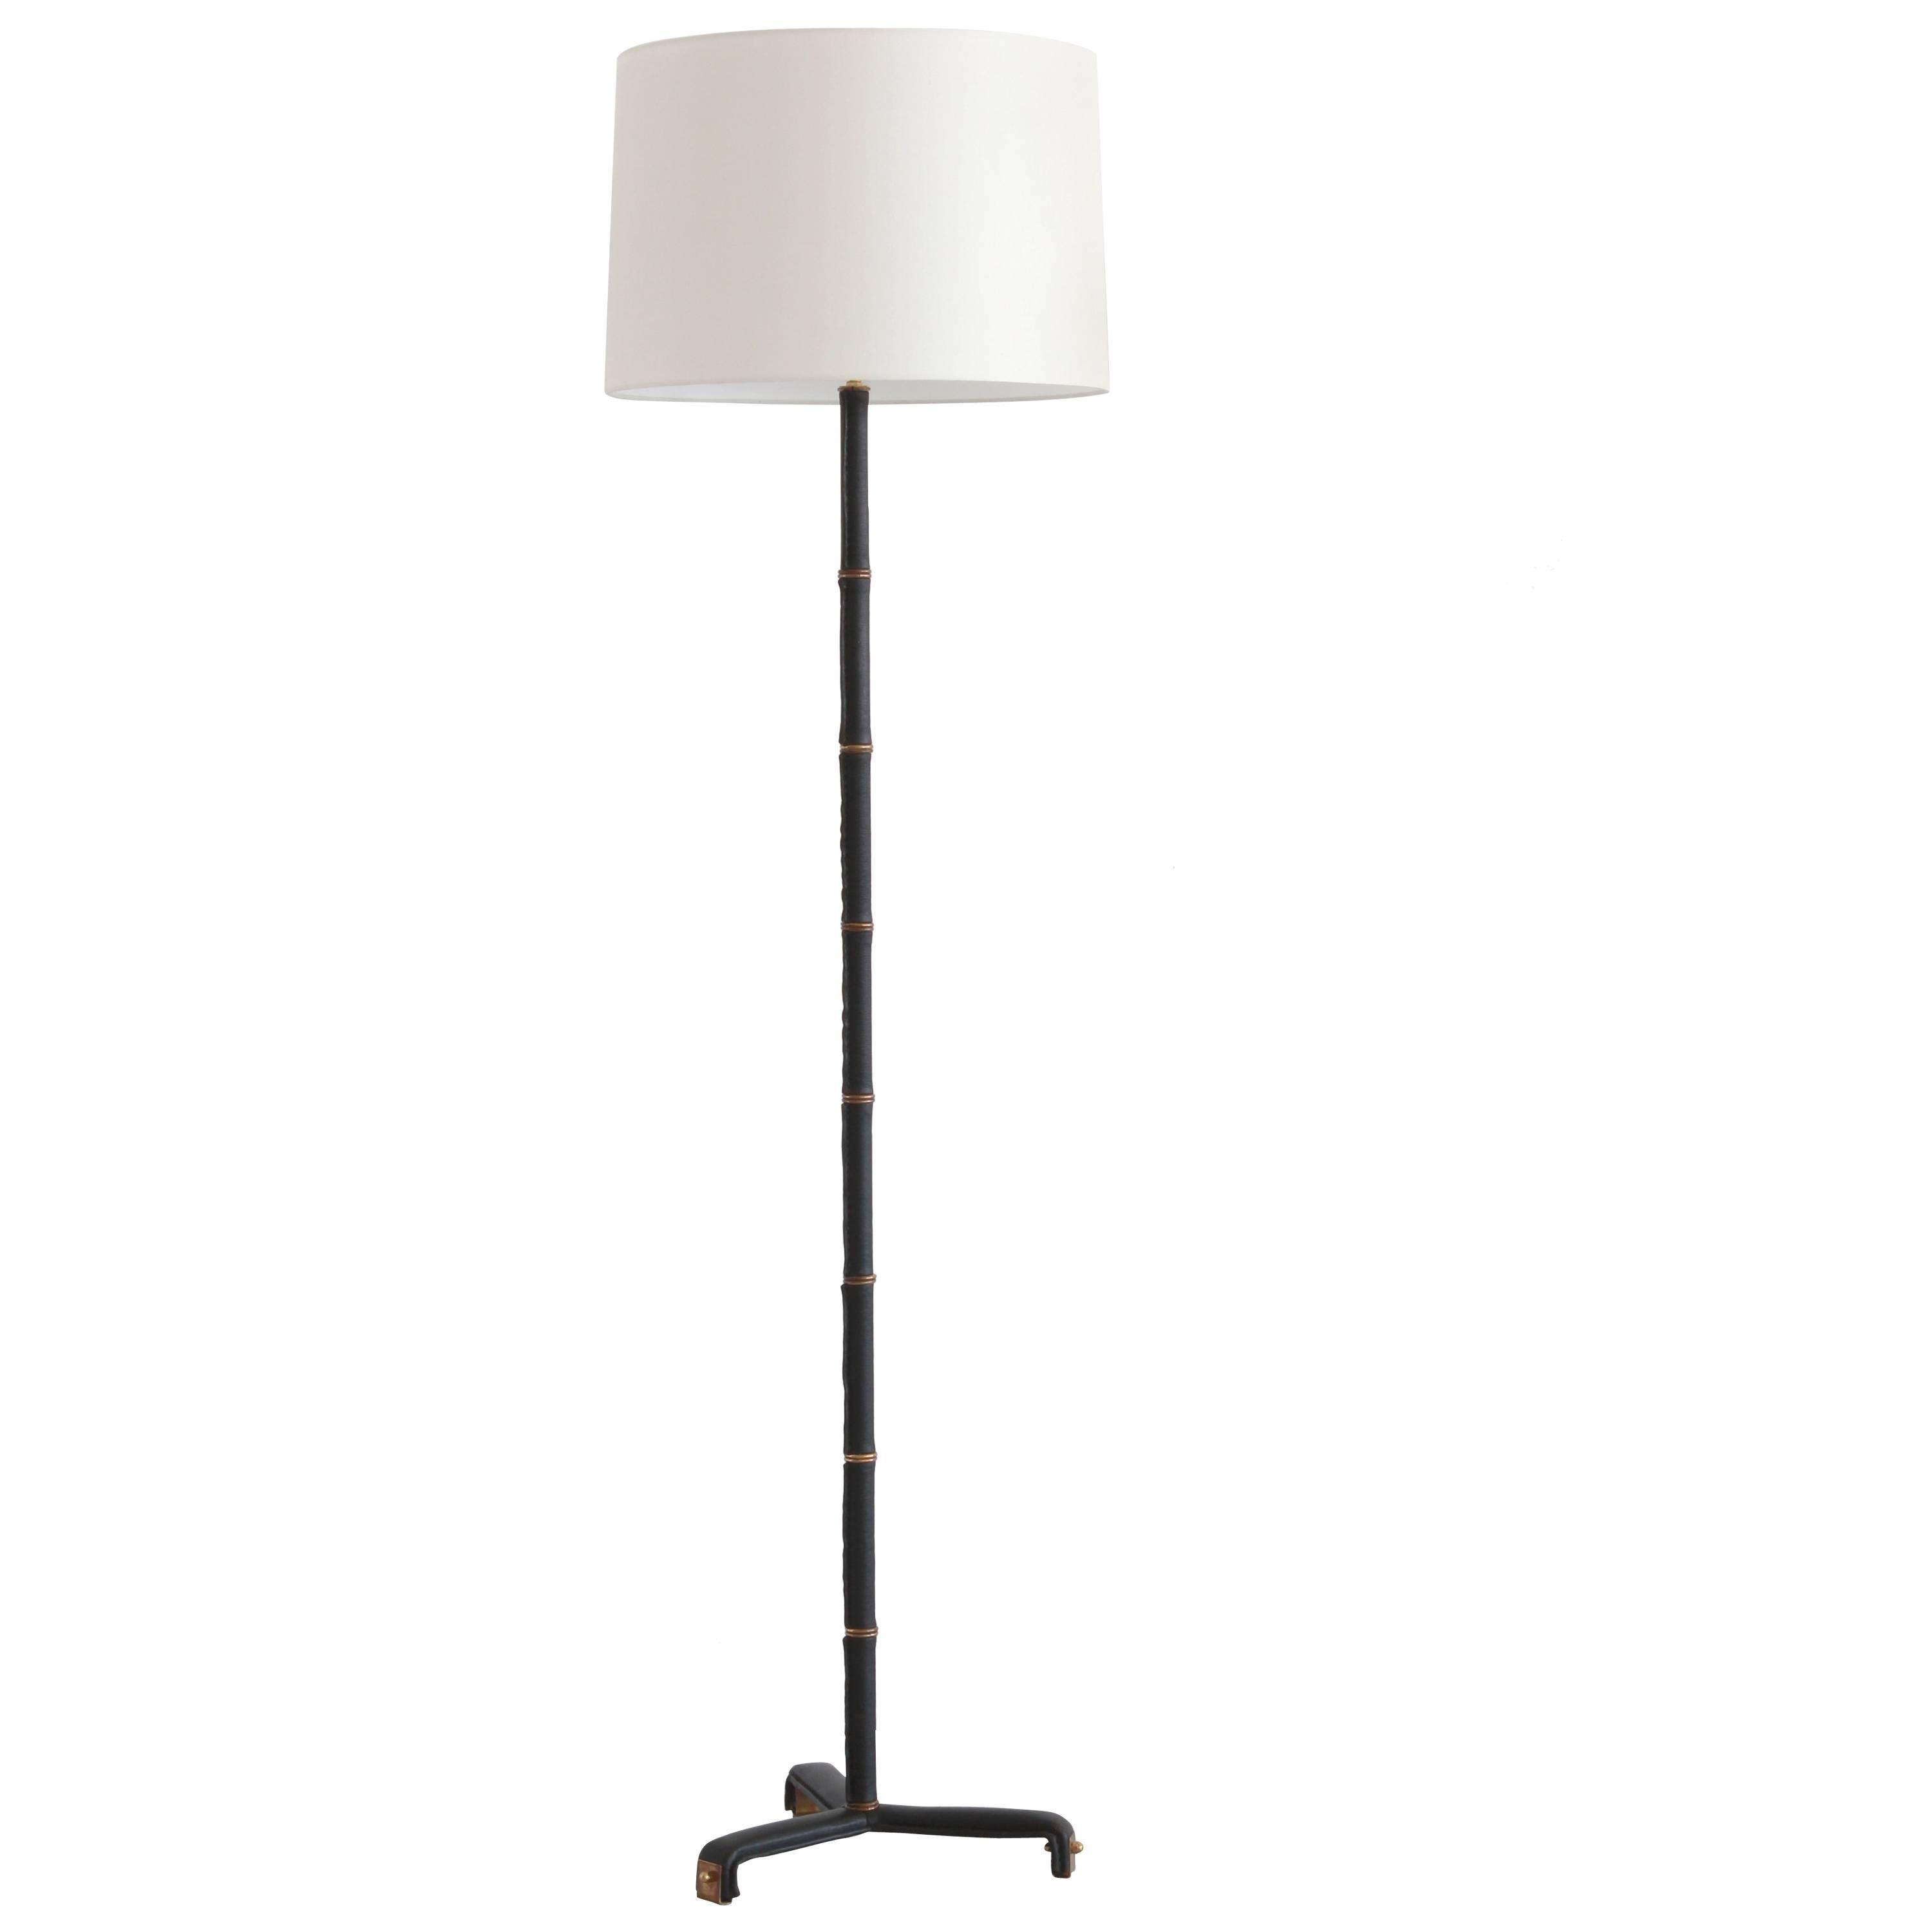 Jacques Adnet Leather Wrapped Floor Lamp